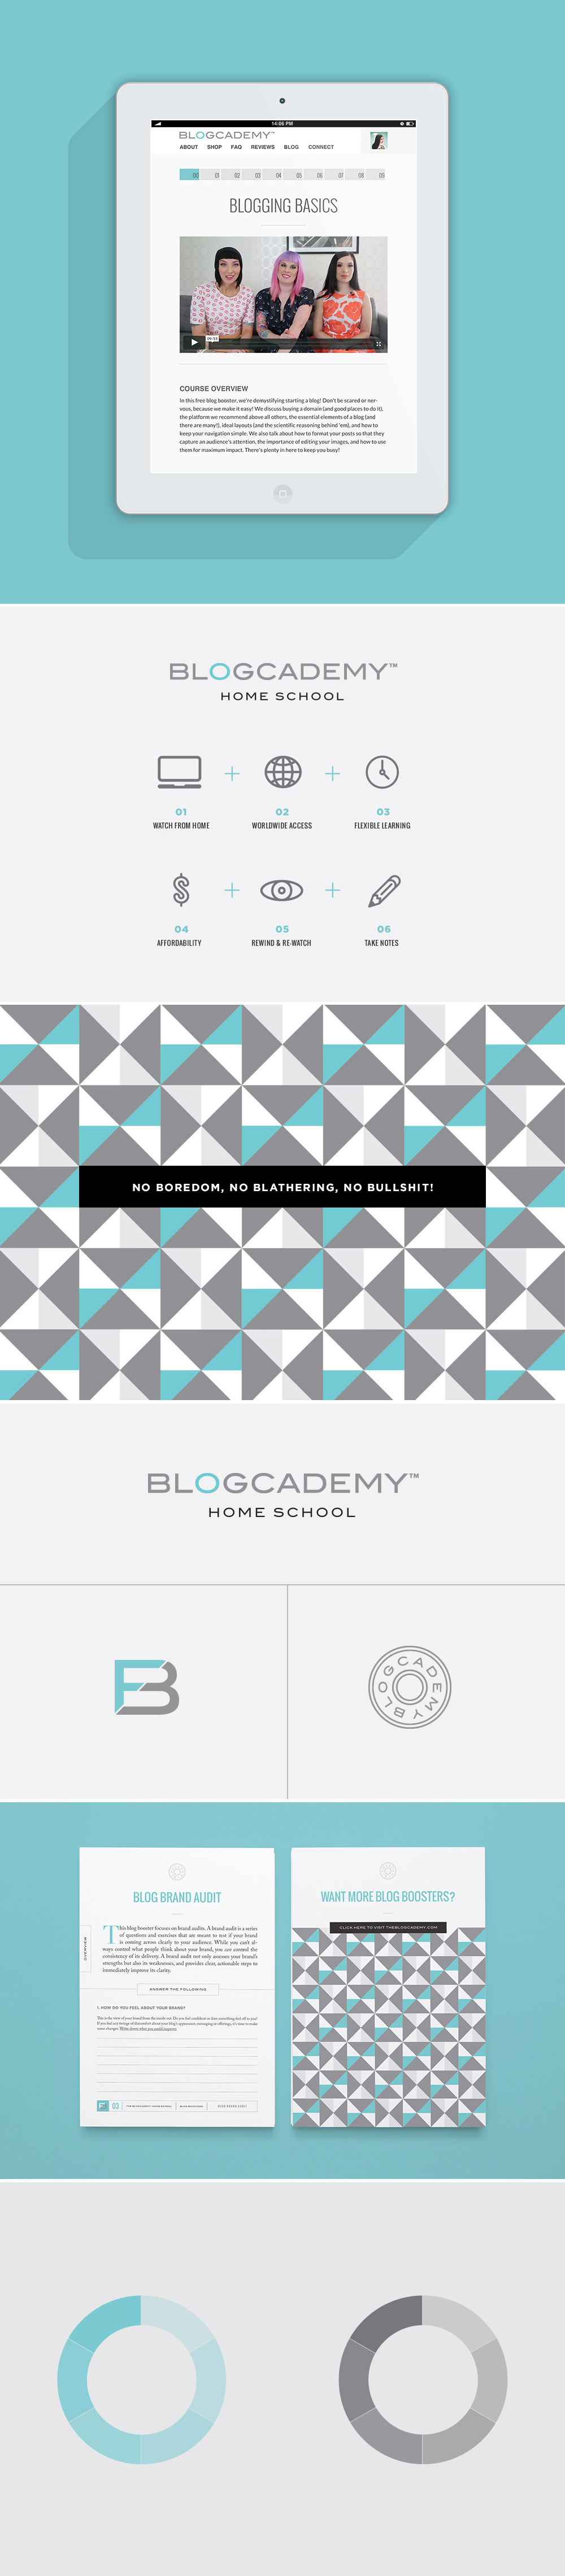 Branch | The Blogcademy Home School